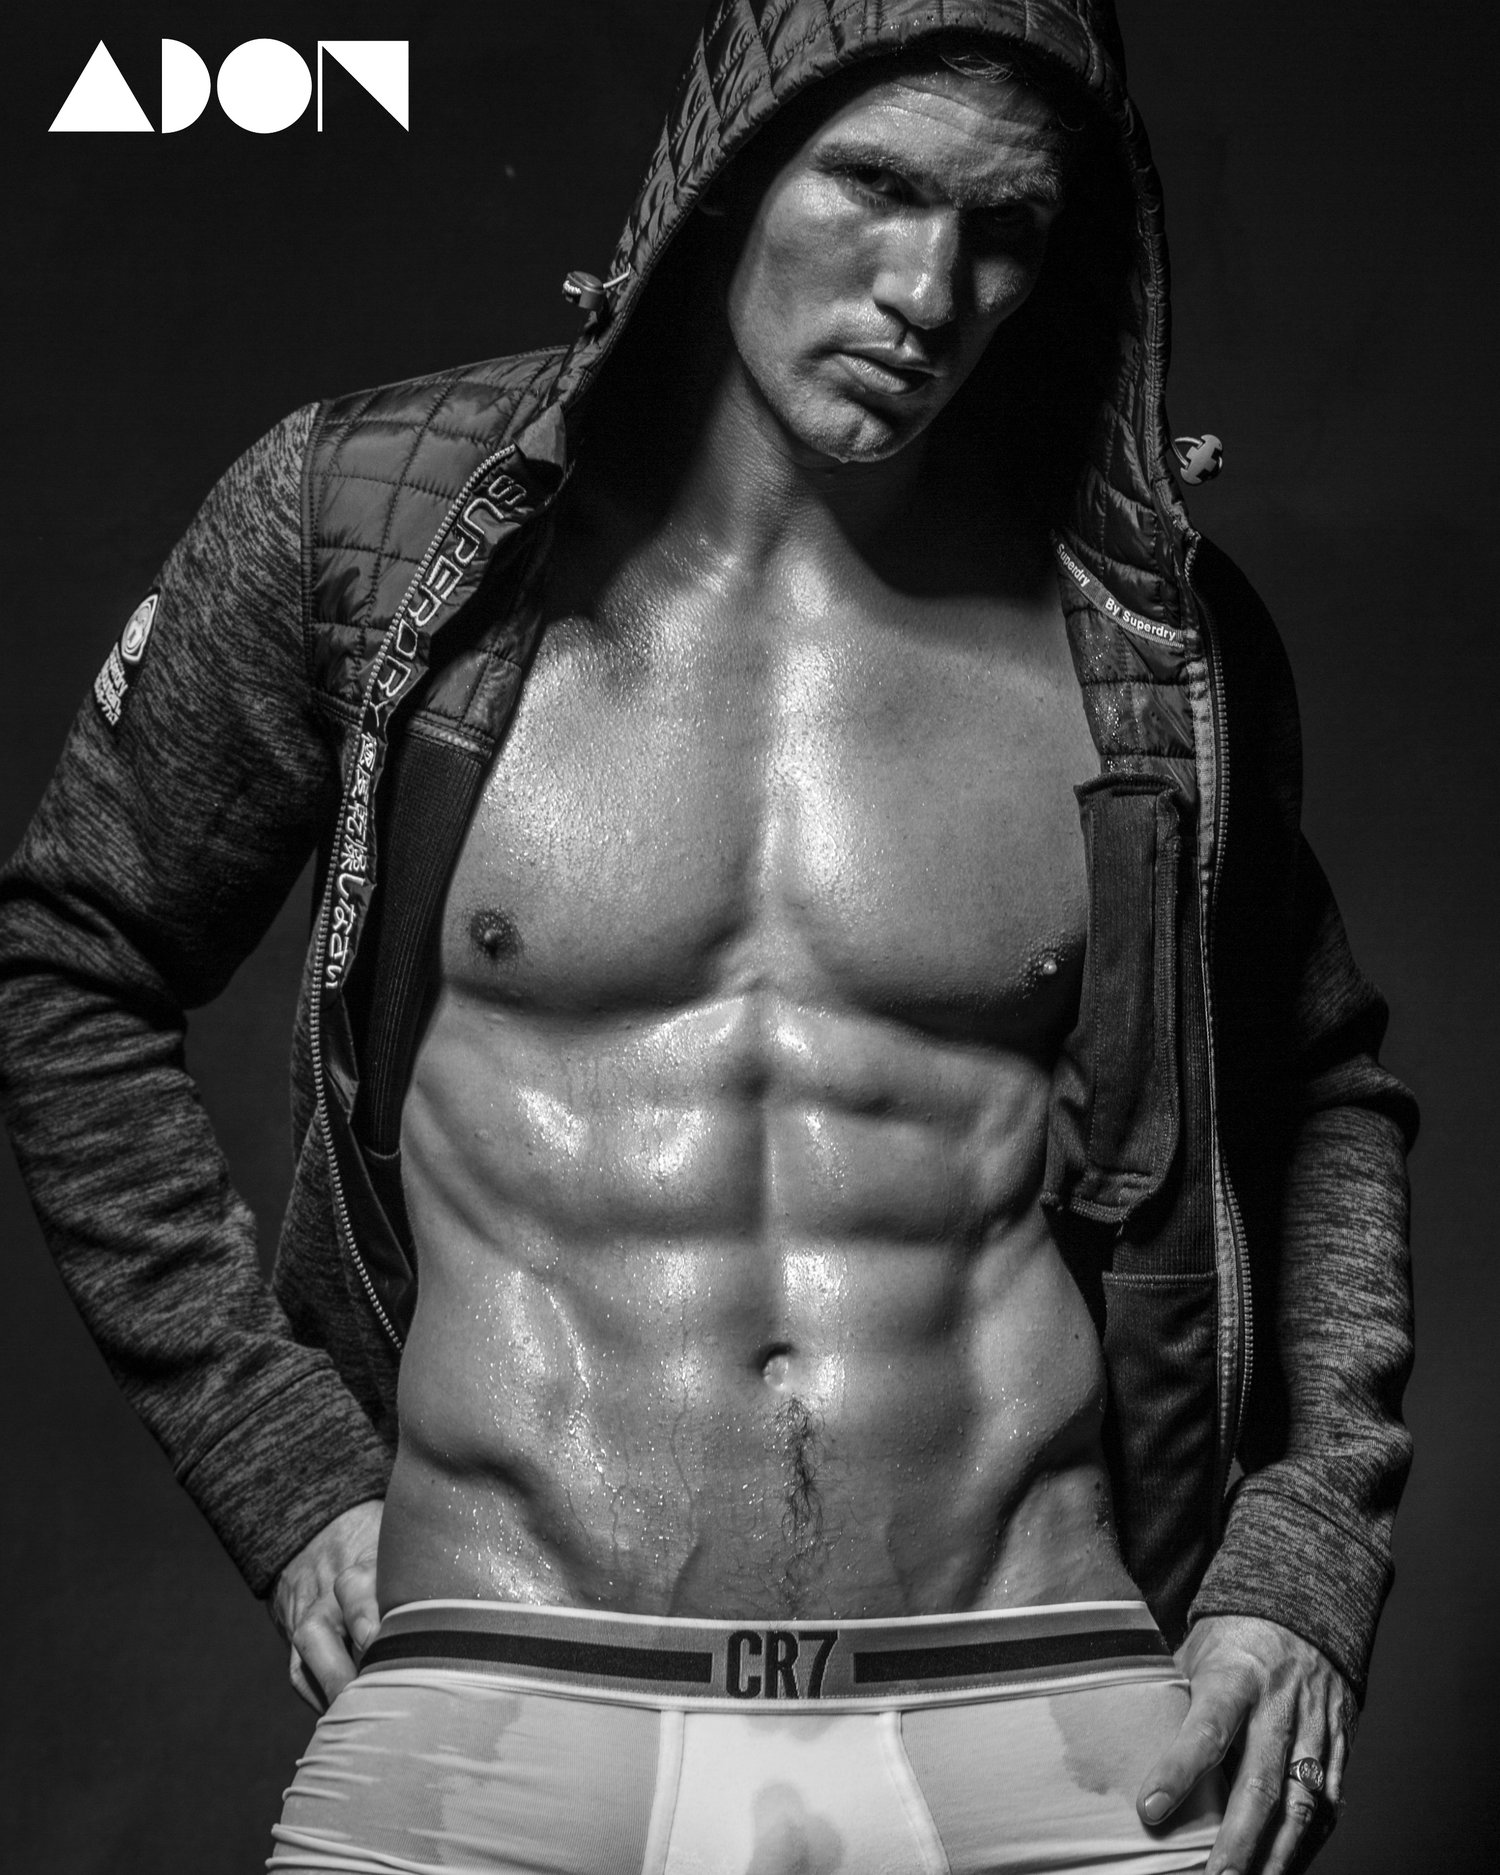 Adon Exclusive: Model Mark Joel By Paul Van Der Linde